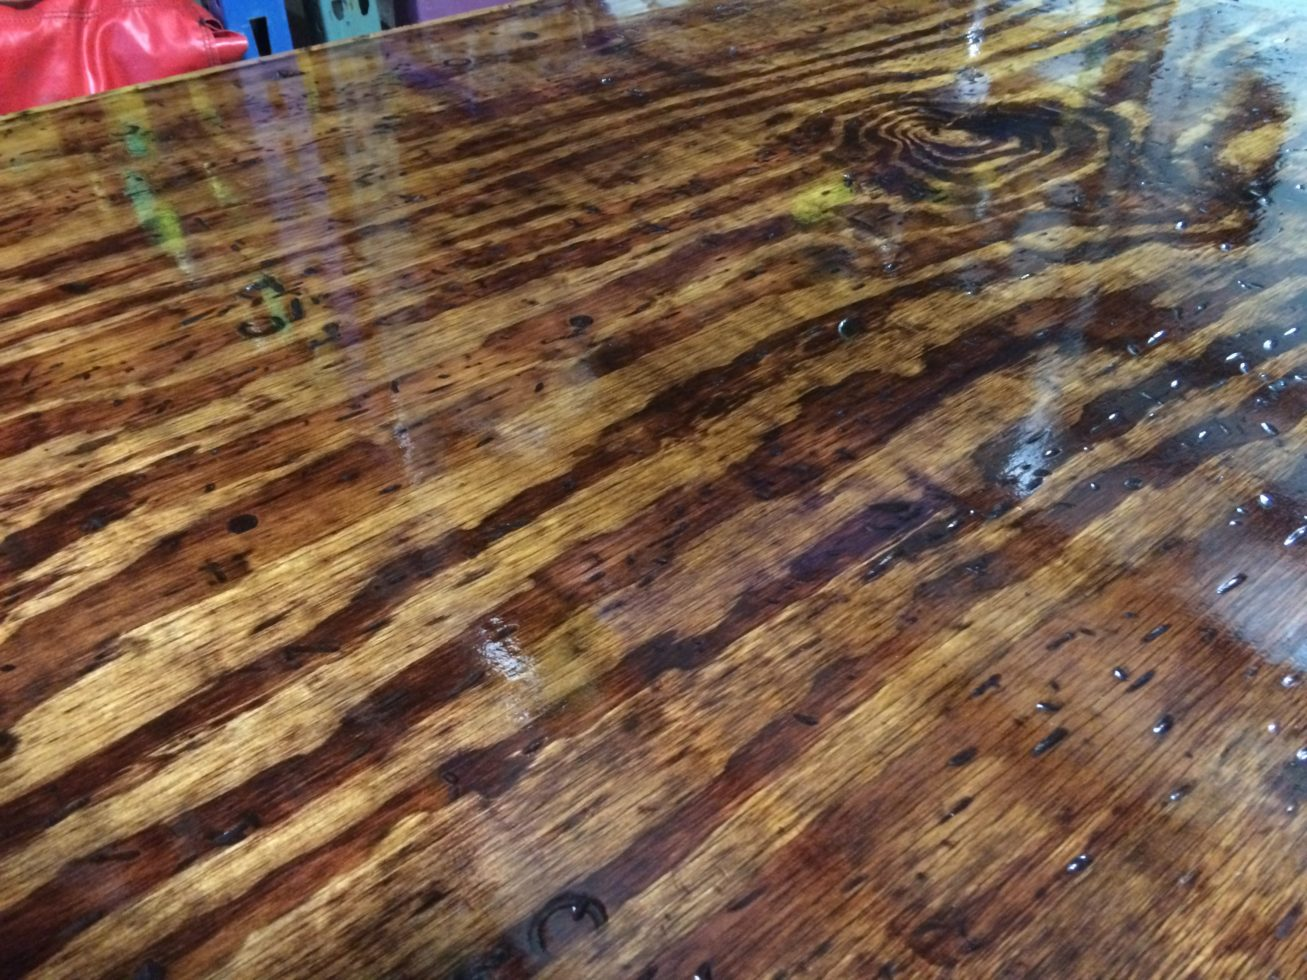 shiny wood grain on rustic poker table